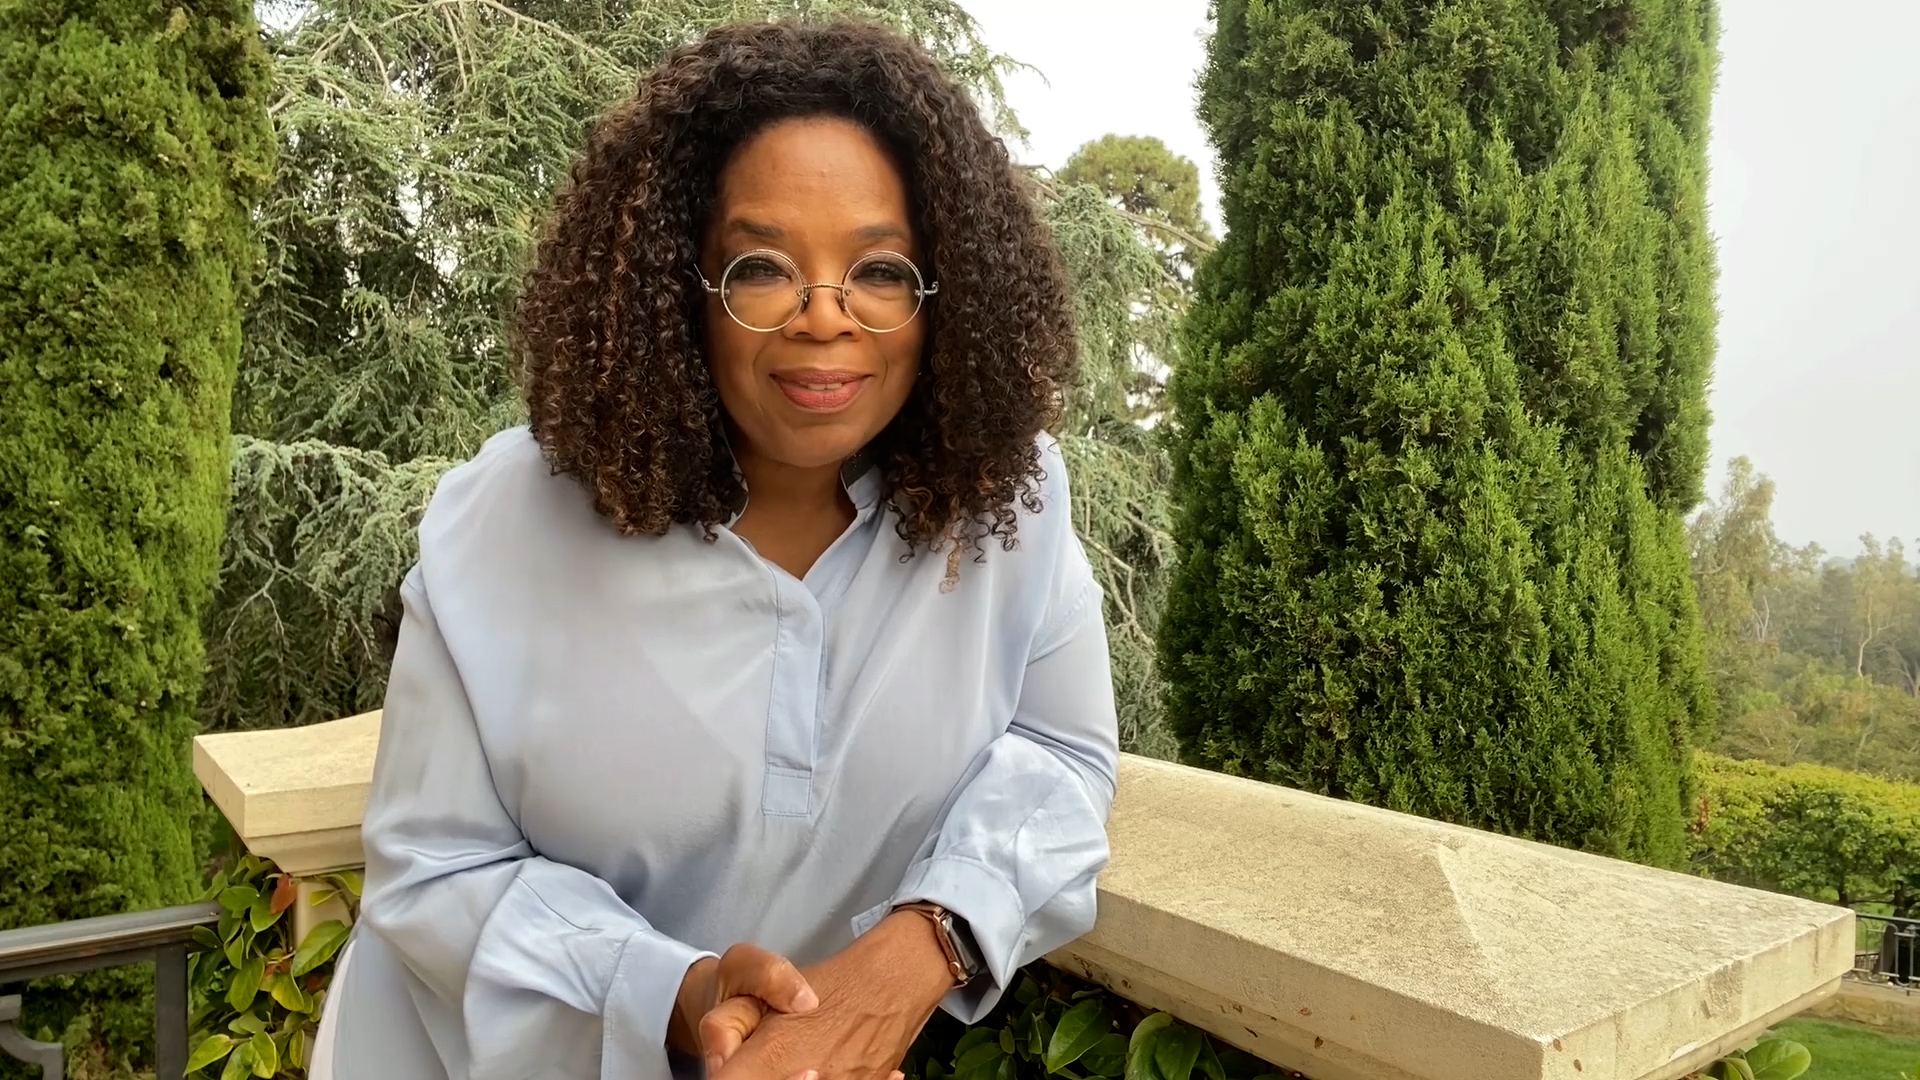 Oprah Contributes to Women's Fund of Hawai'i, Which Has Supported 9 Grantees on Maui